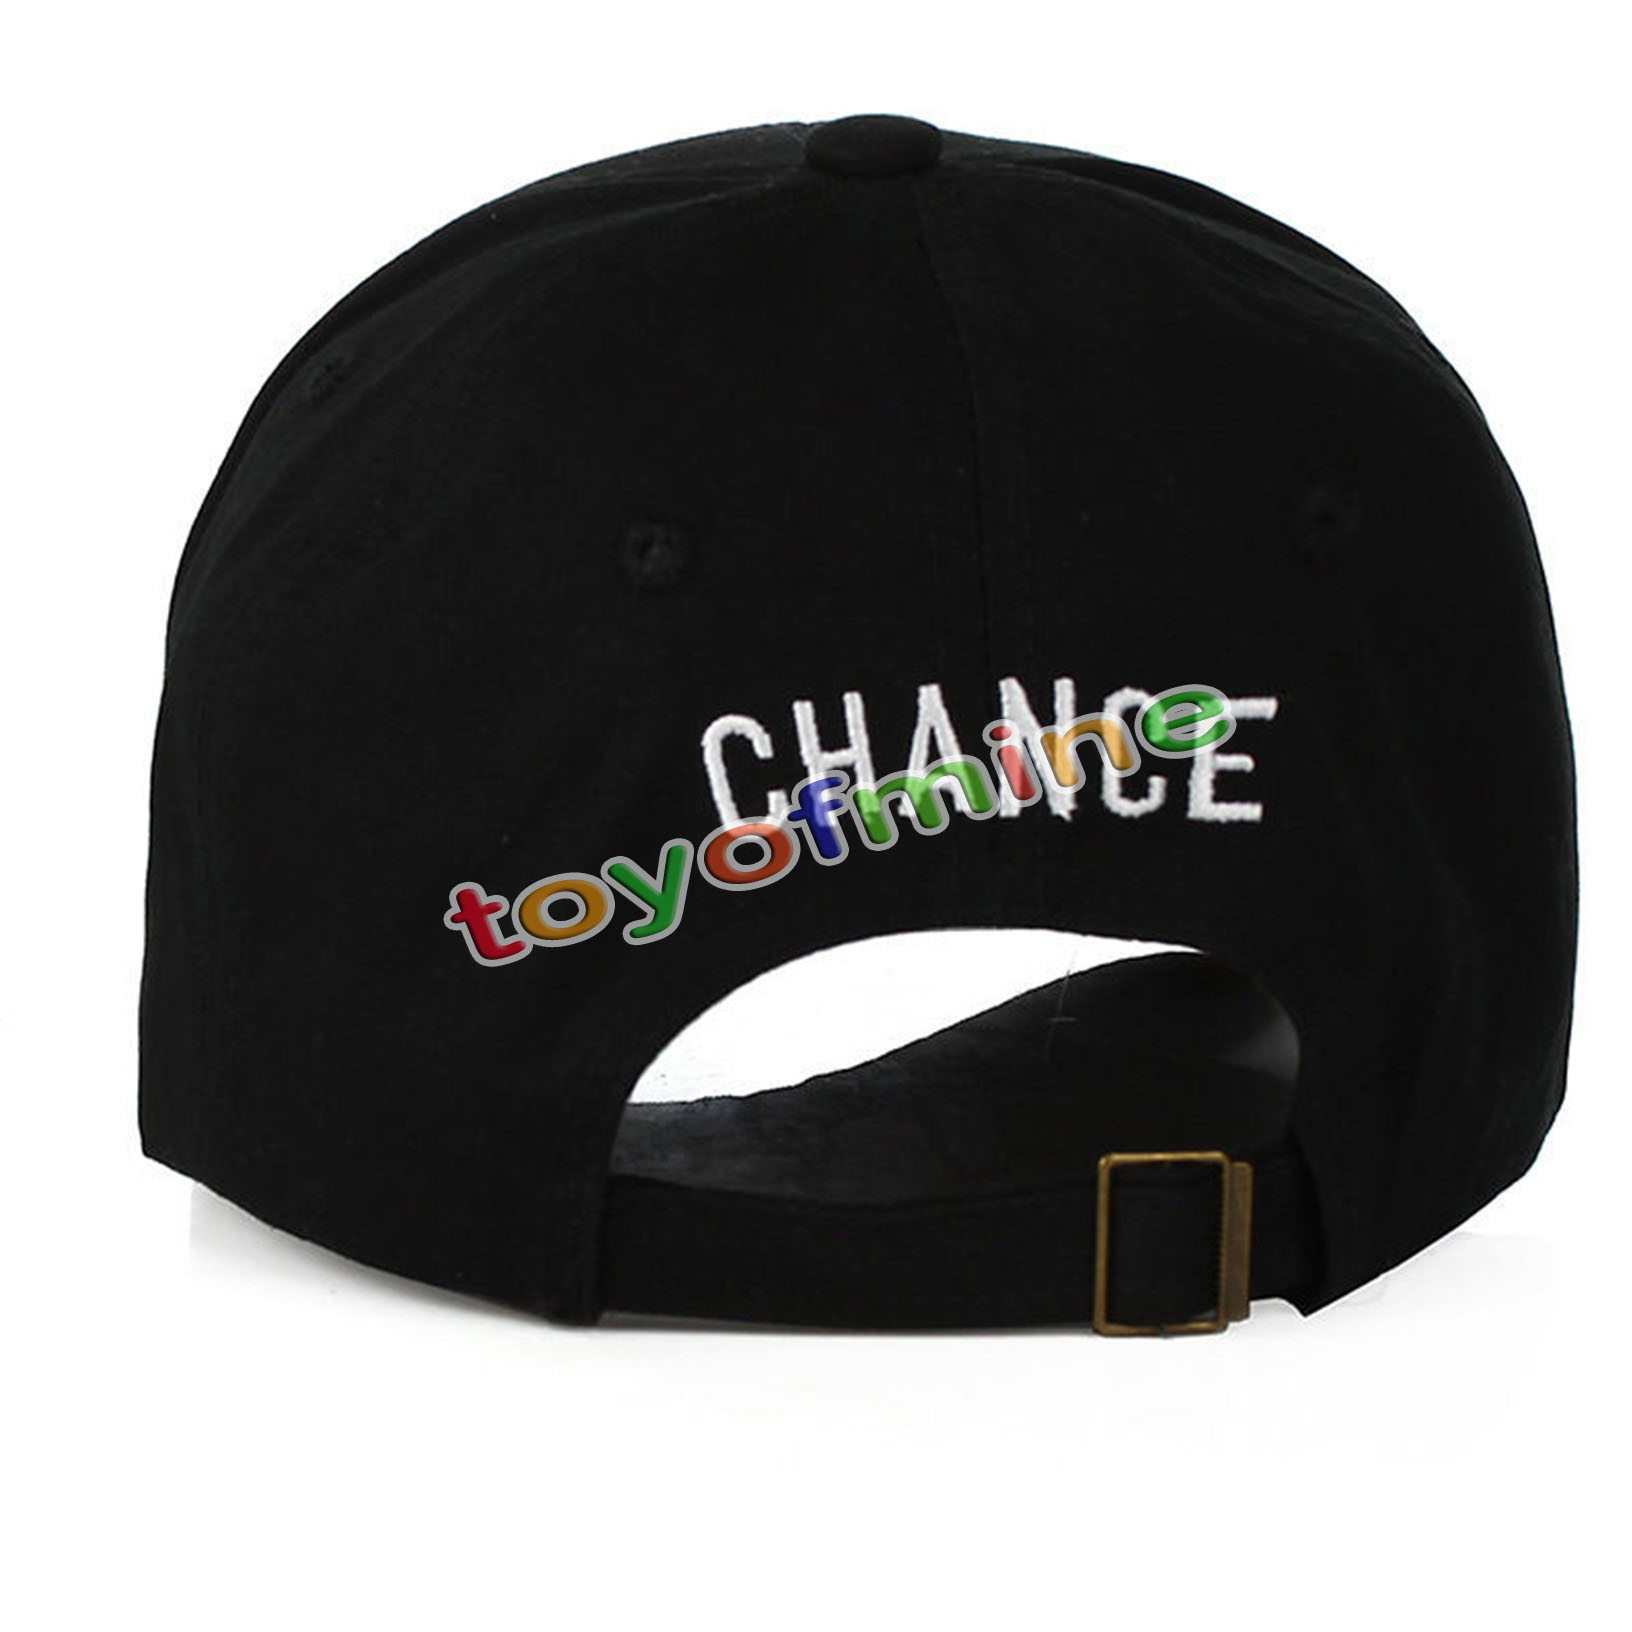 Coloring book chance the rapper hat - Material Cotton